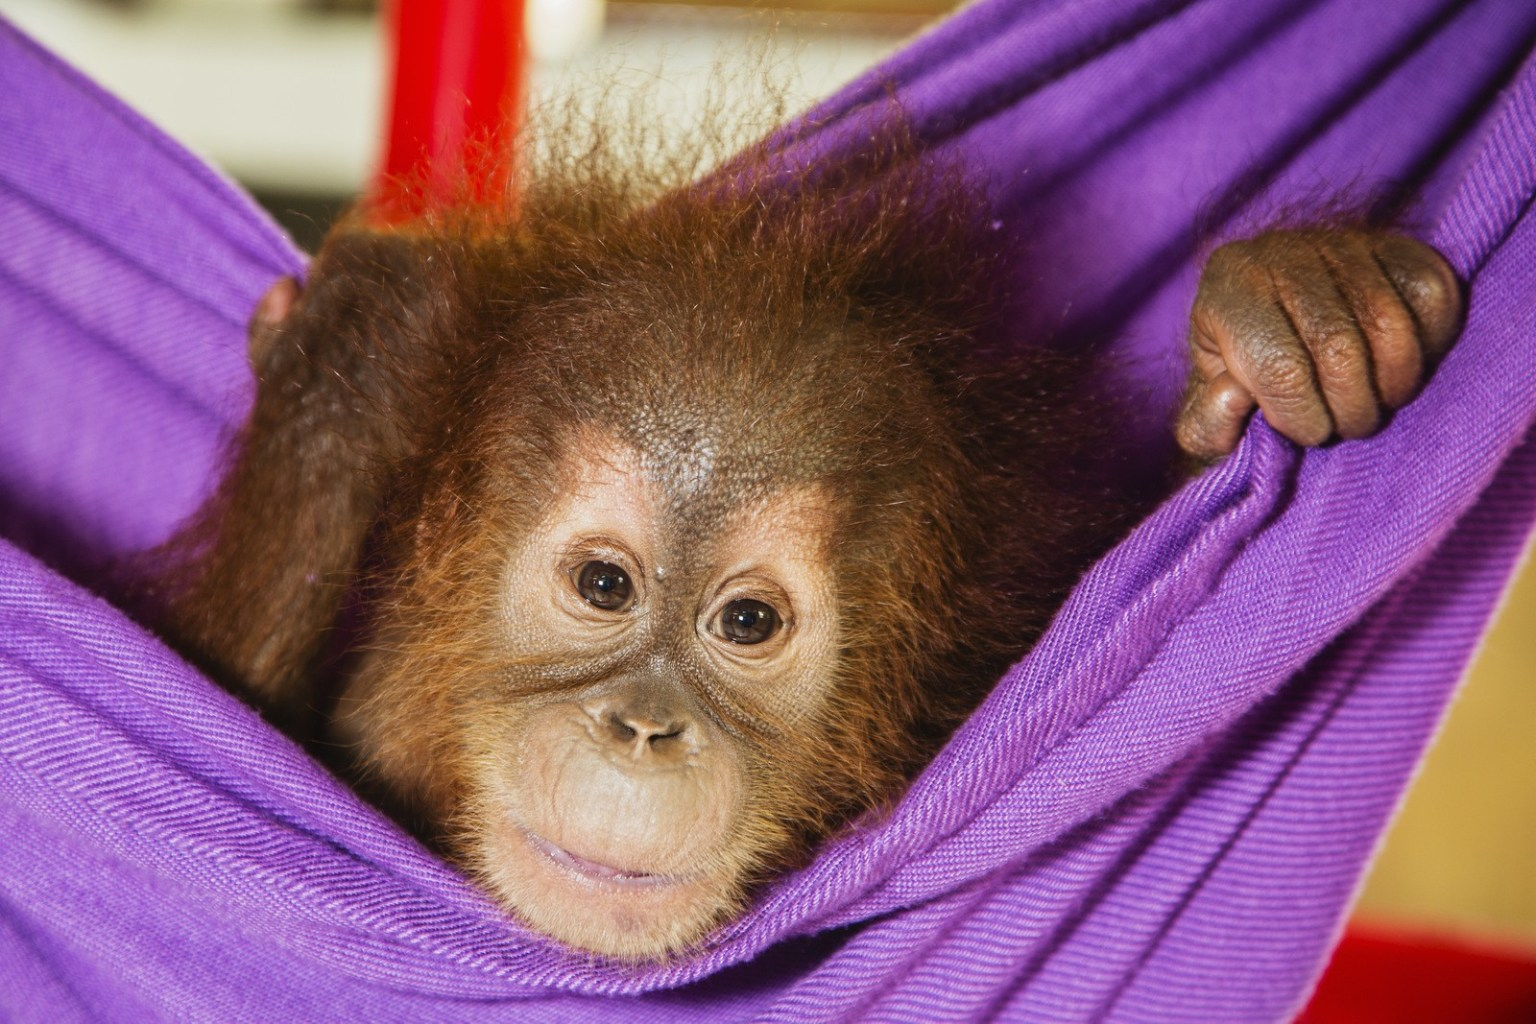 Image: A young critically endangered Sumatran orangutan (Pongo abelii) that was rescued from illegal pet traders after its mother was killed, plays in the quarantine center in Medan where he needs to live until he is old enough to be released safely back into the wild, Medan, Sumatra, Indonesia